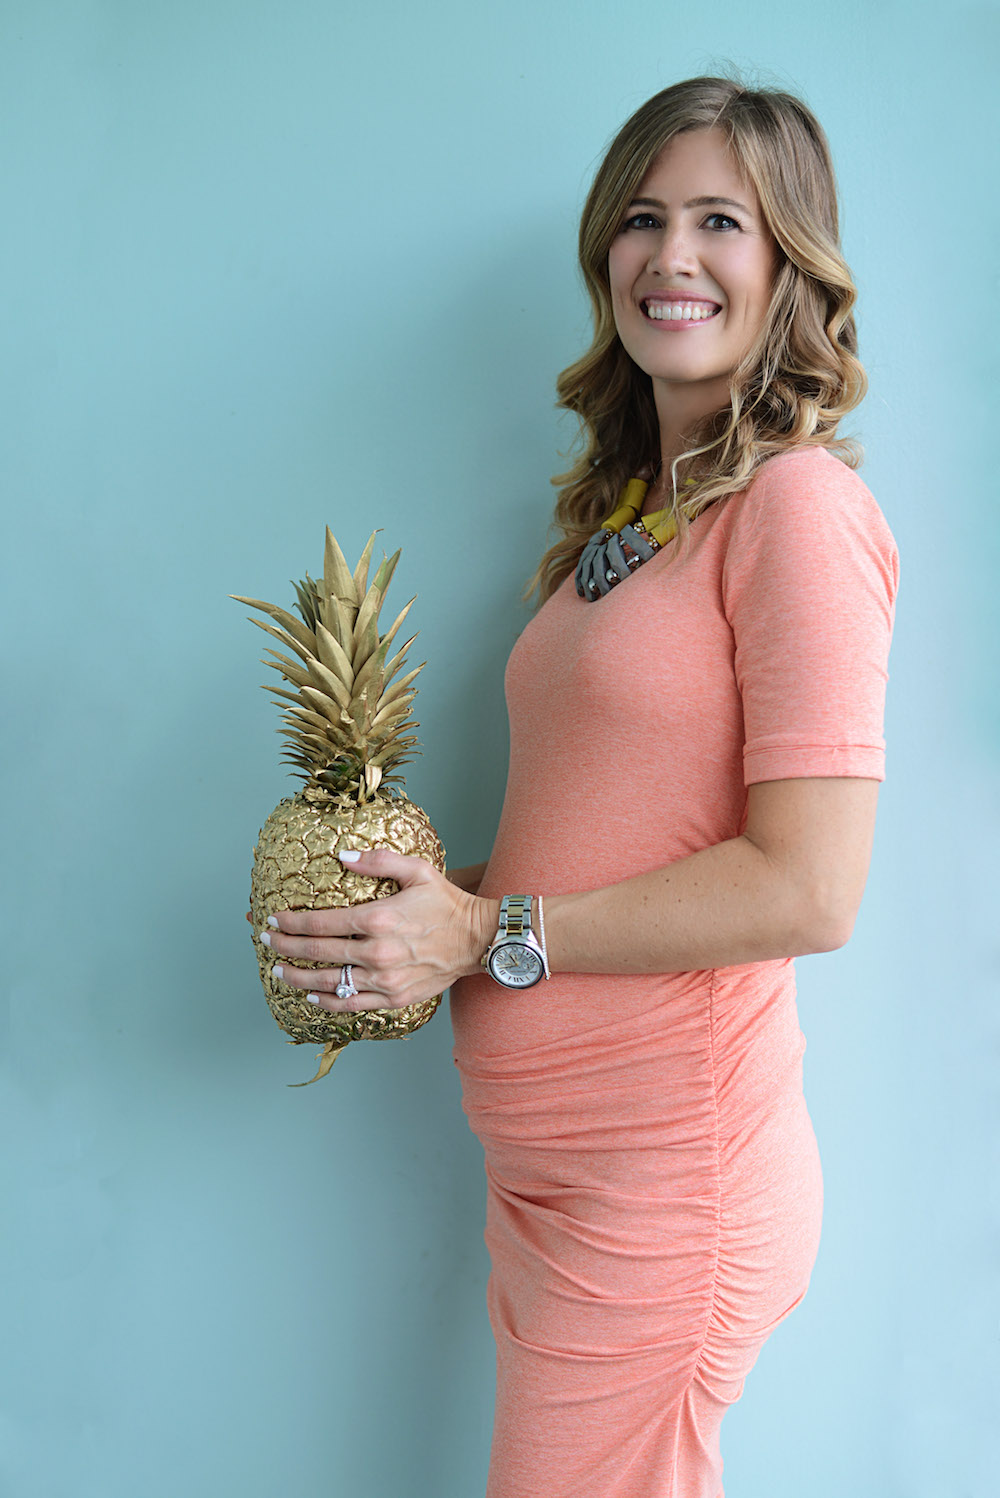 gold_pineapple_pink_dress_baby_bump